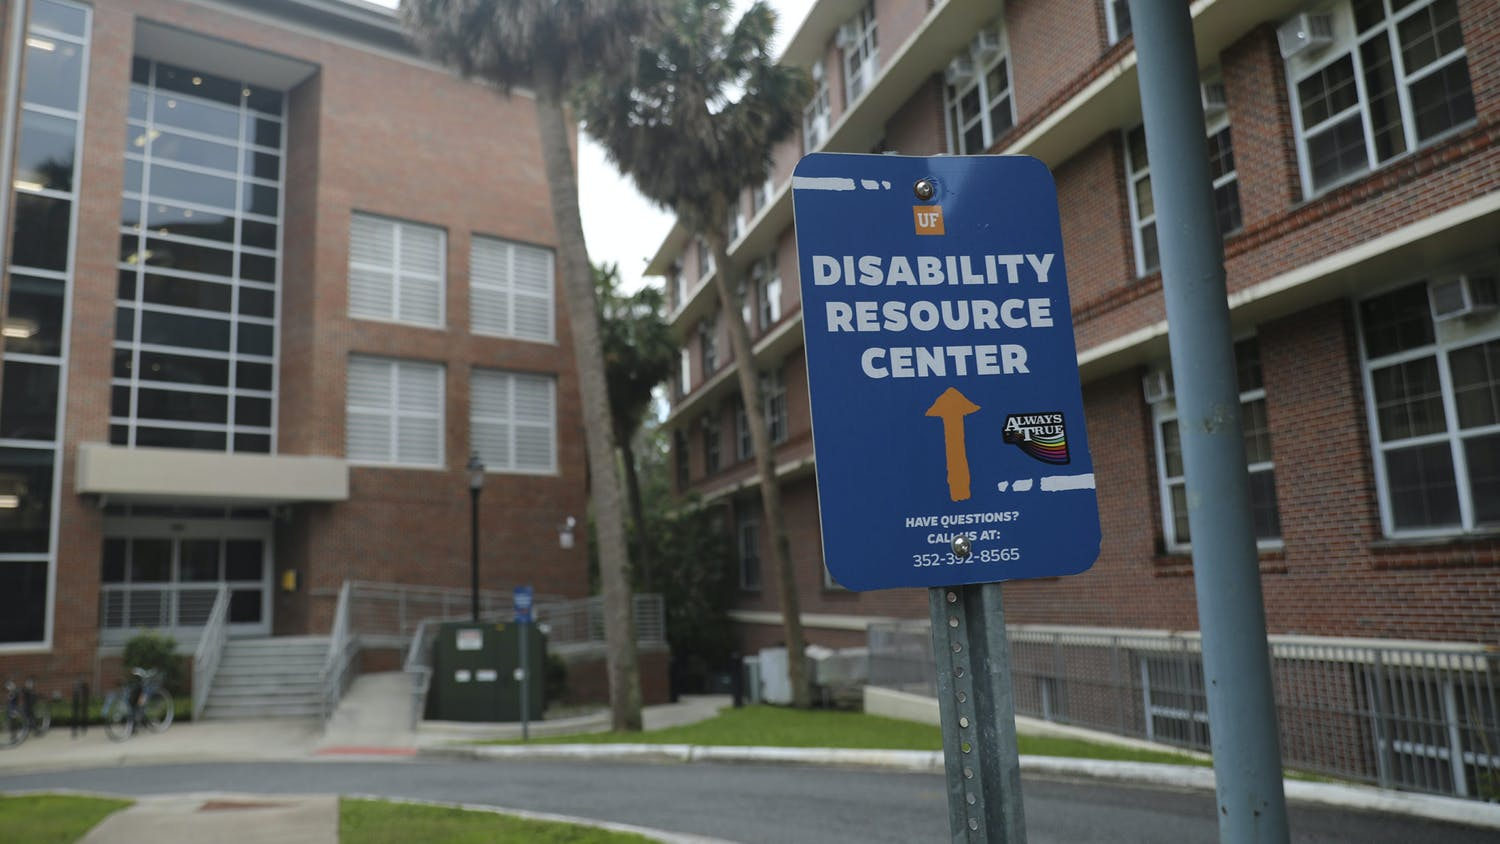 University of Florida Disability Resource Center located at Reid Hall on Tuesday, July 20, 2021. The DRC provides services to students with physical, learning, sensory or psychological disabilities.